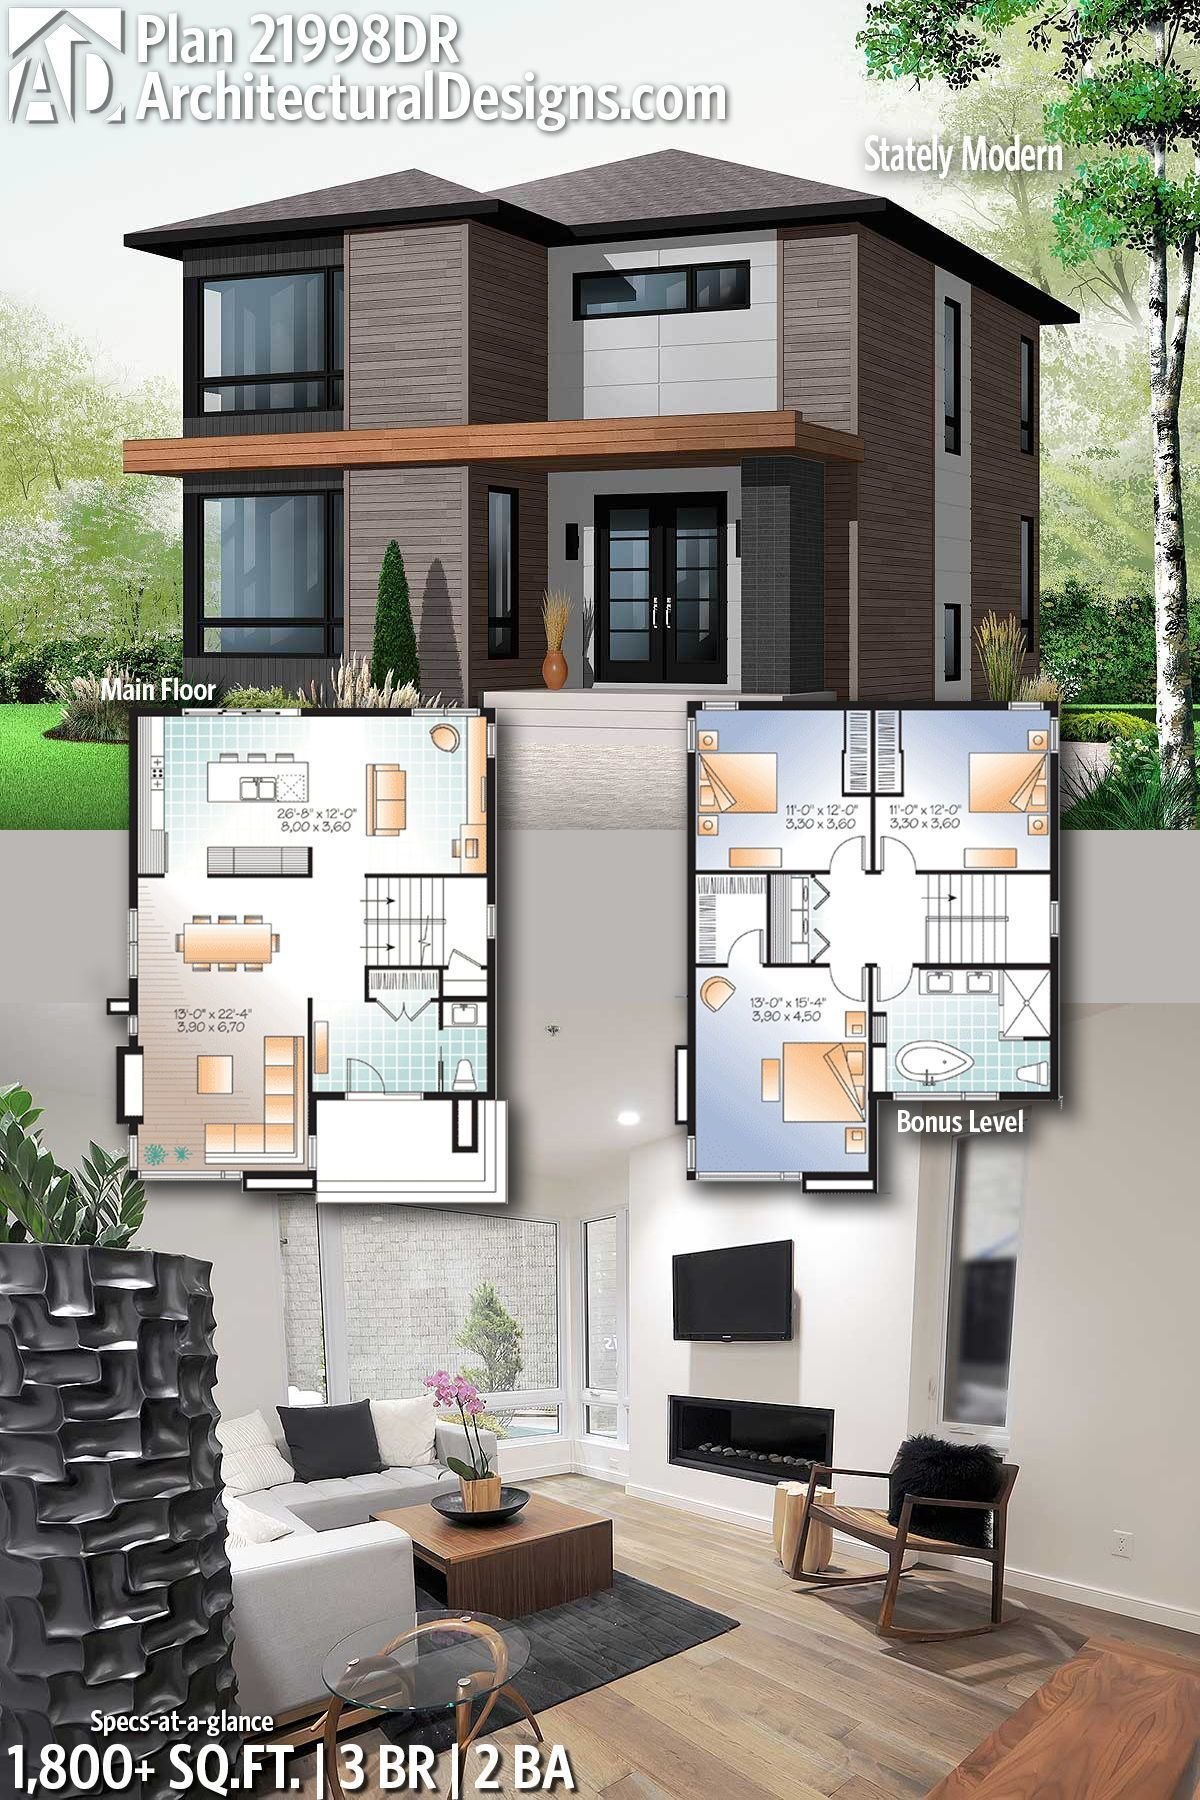 Architectural Designs Modern Home Plan 21998dr With 3 Bedrooms 2 Full Baths In 1 21998dr Arch Modern House Plans Modern House Design Modern Houses Interior